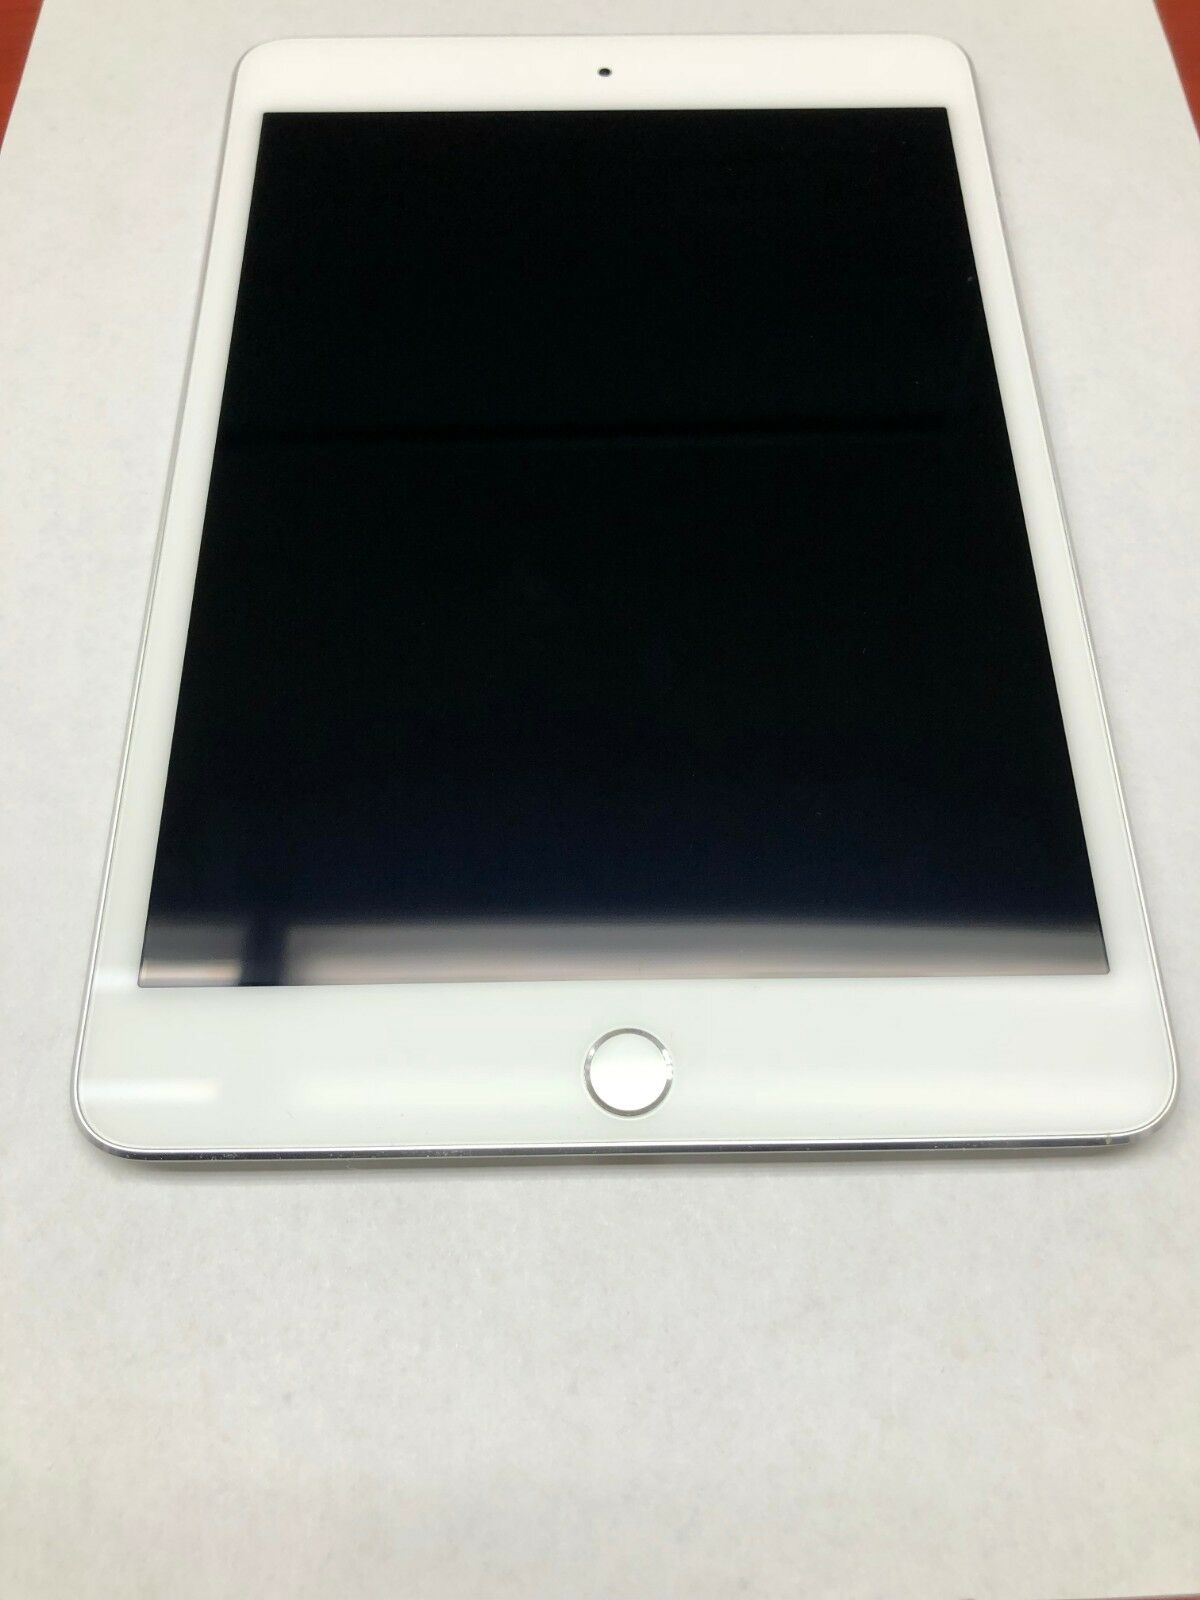 Apple iPad mini 4 64GB, Wi-Fi, 7.9in - Silver